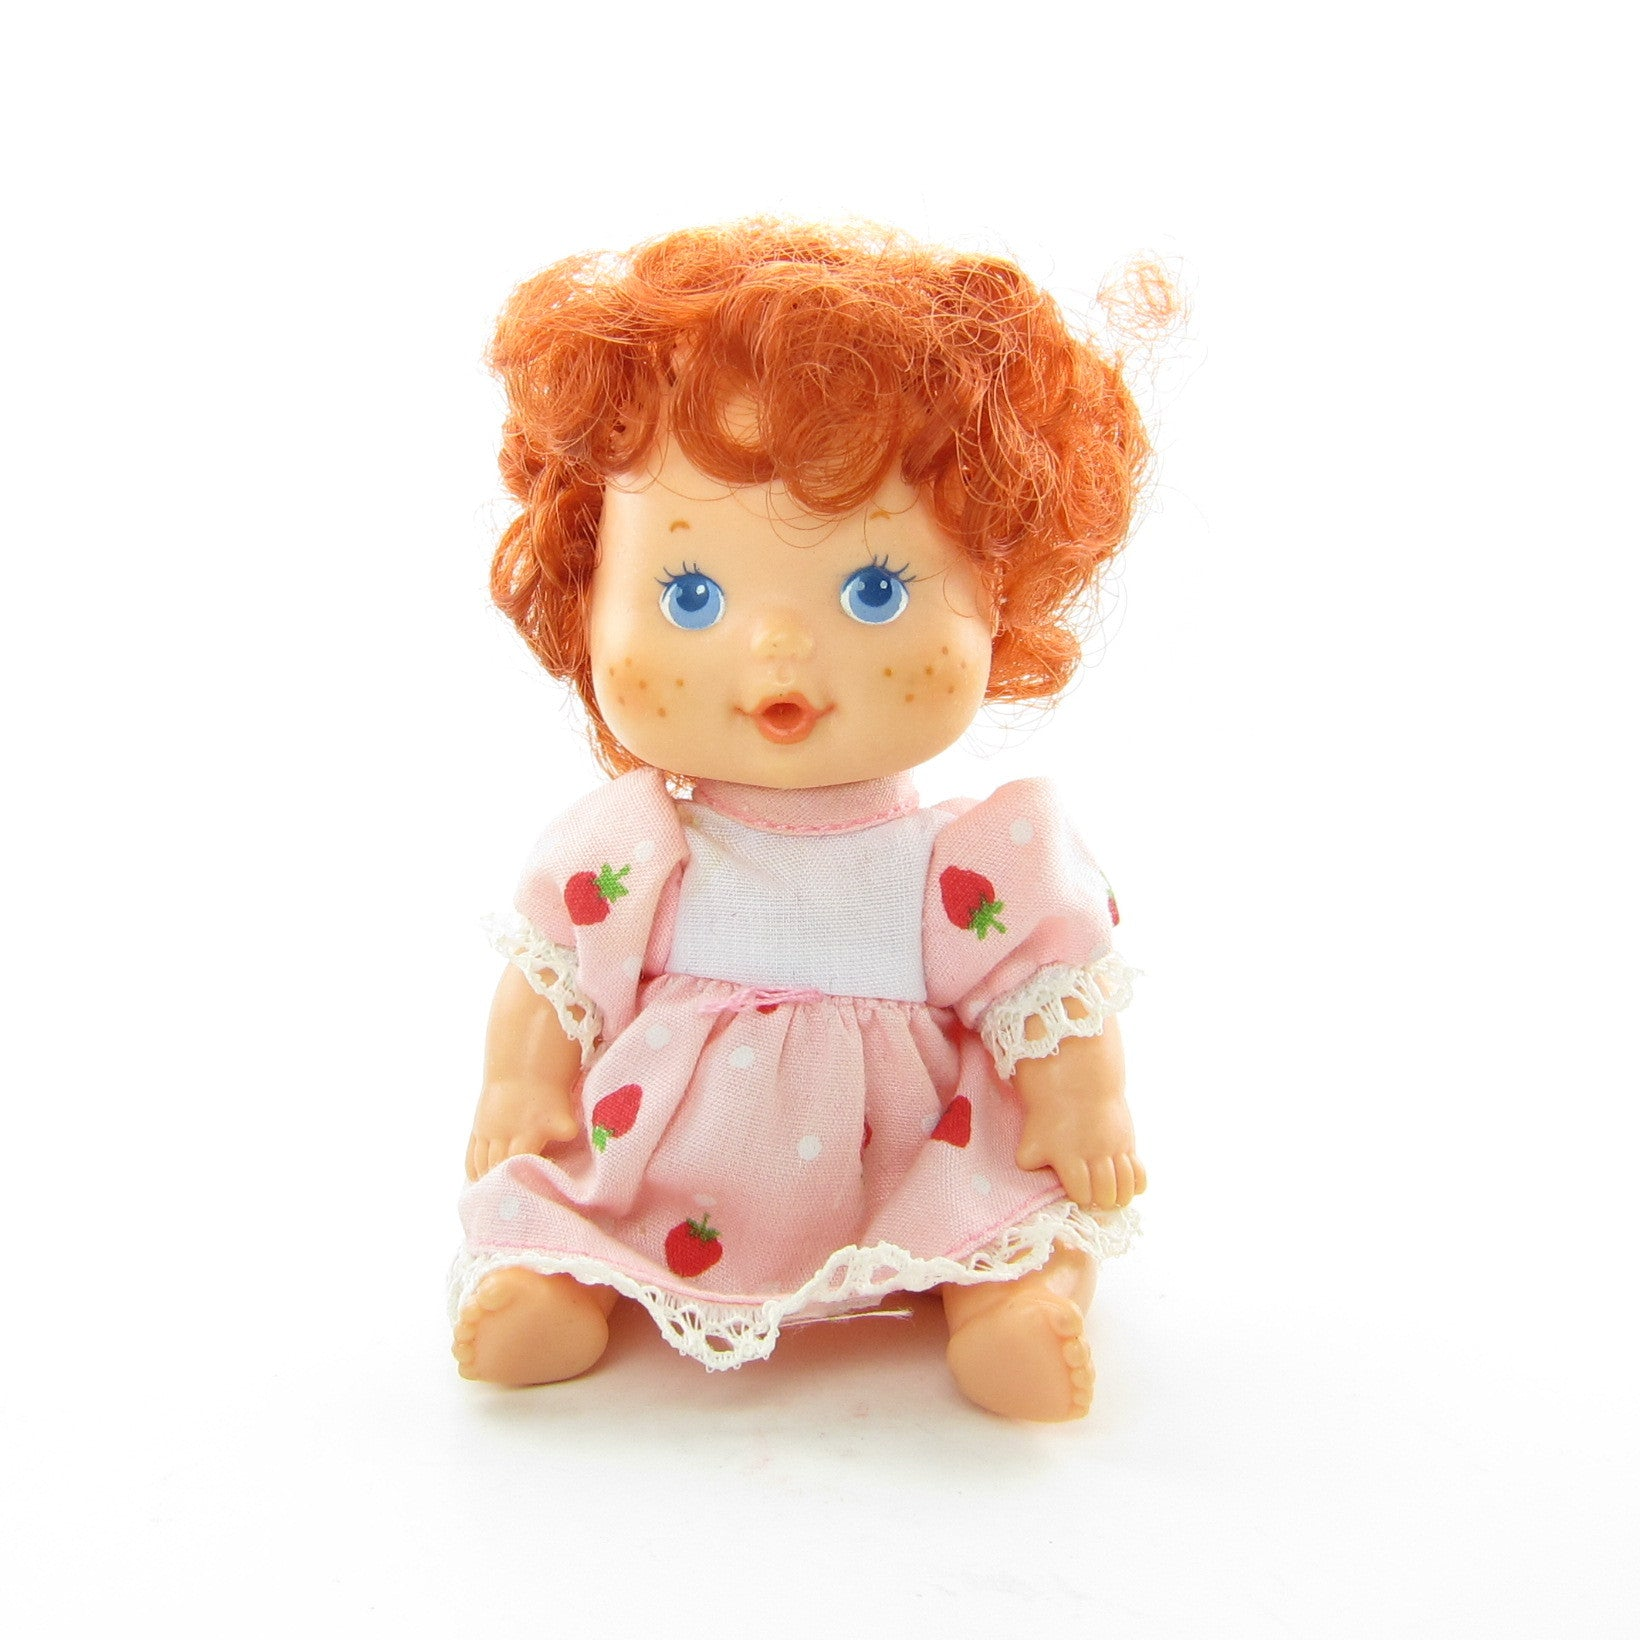 Strawberry Shortcake Berry Baby doll